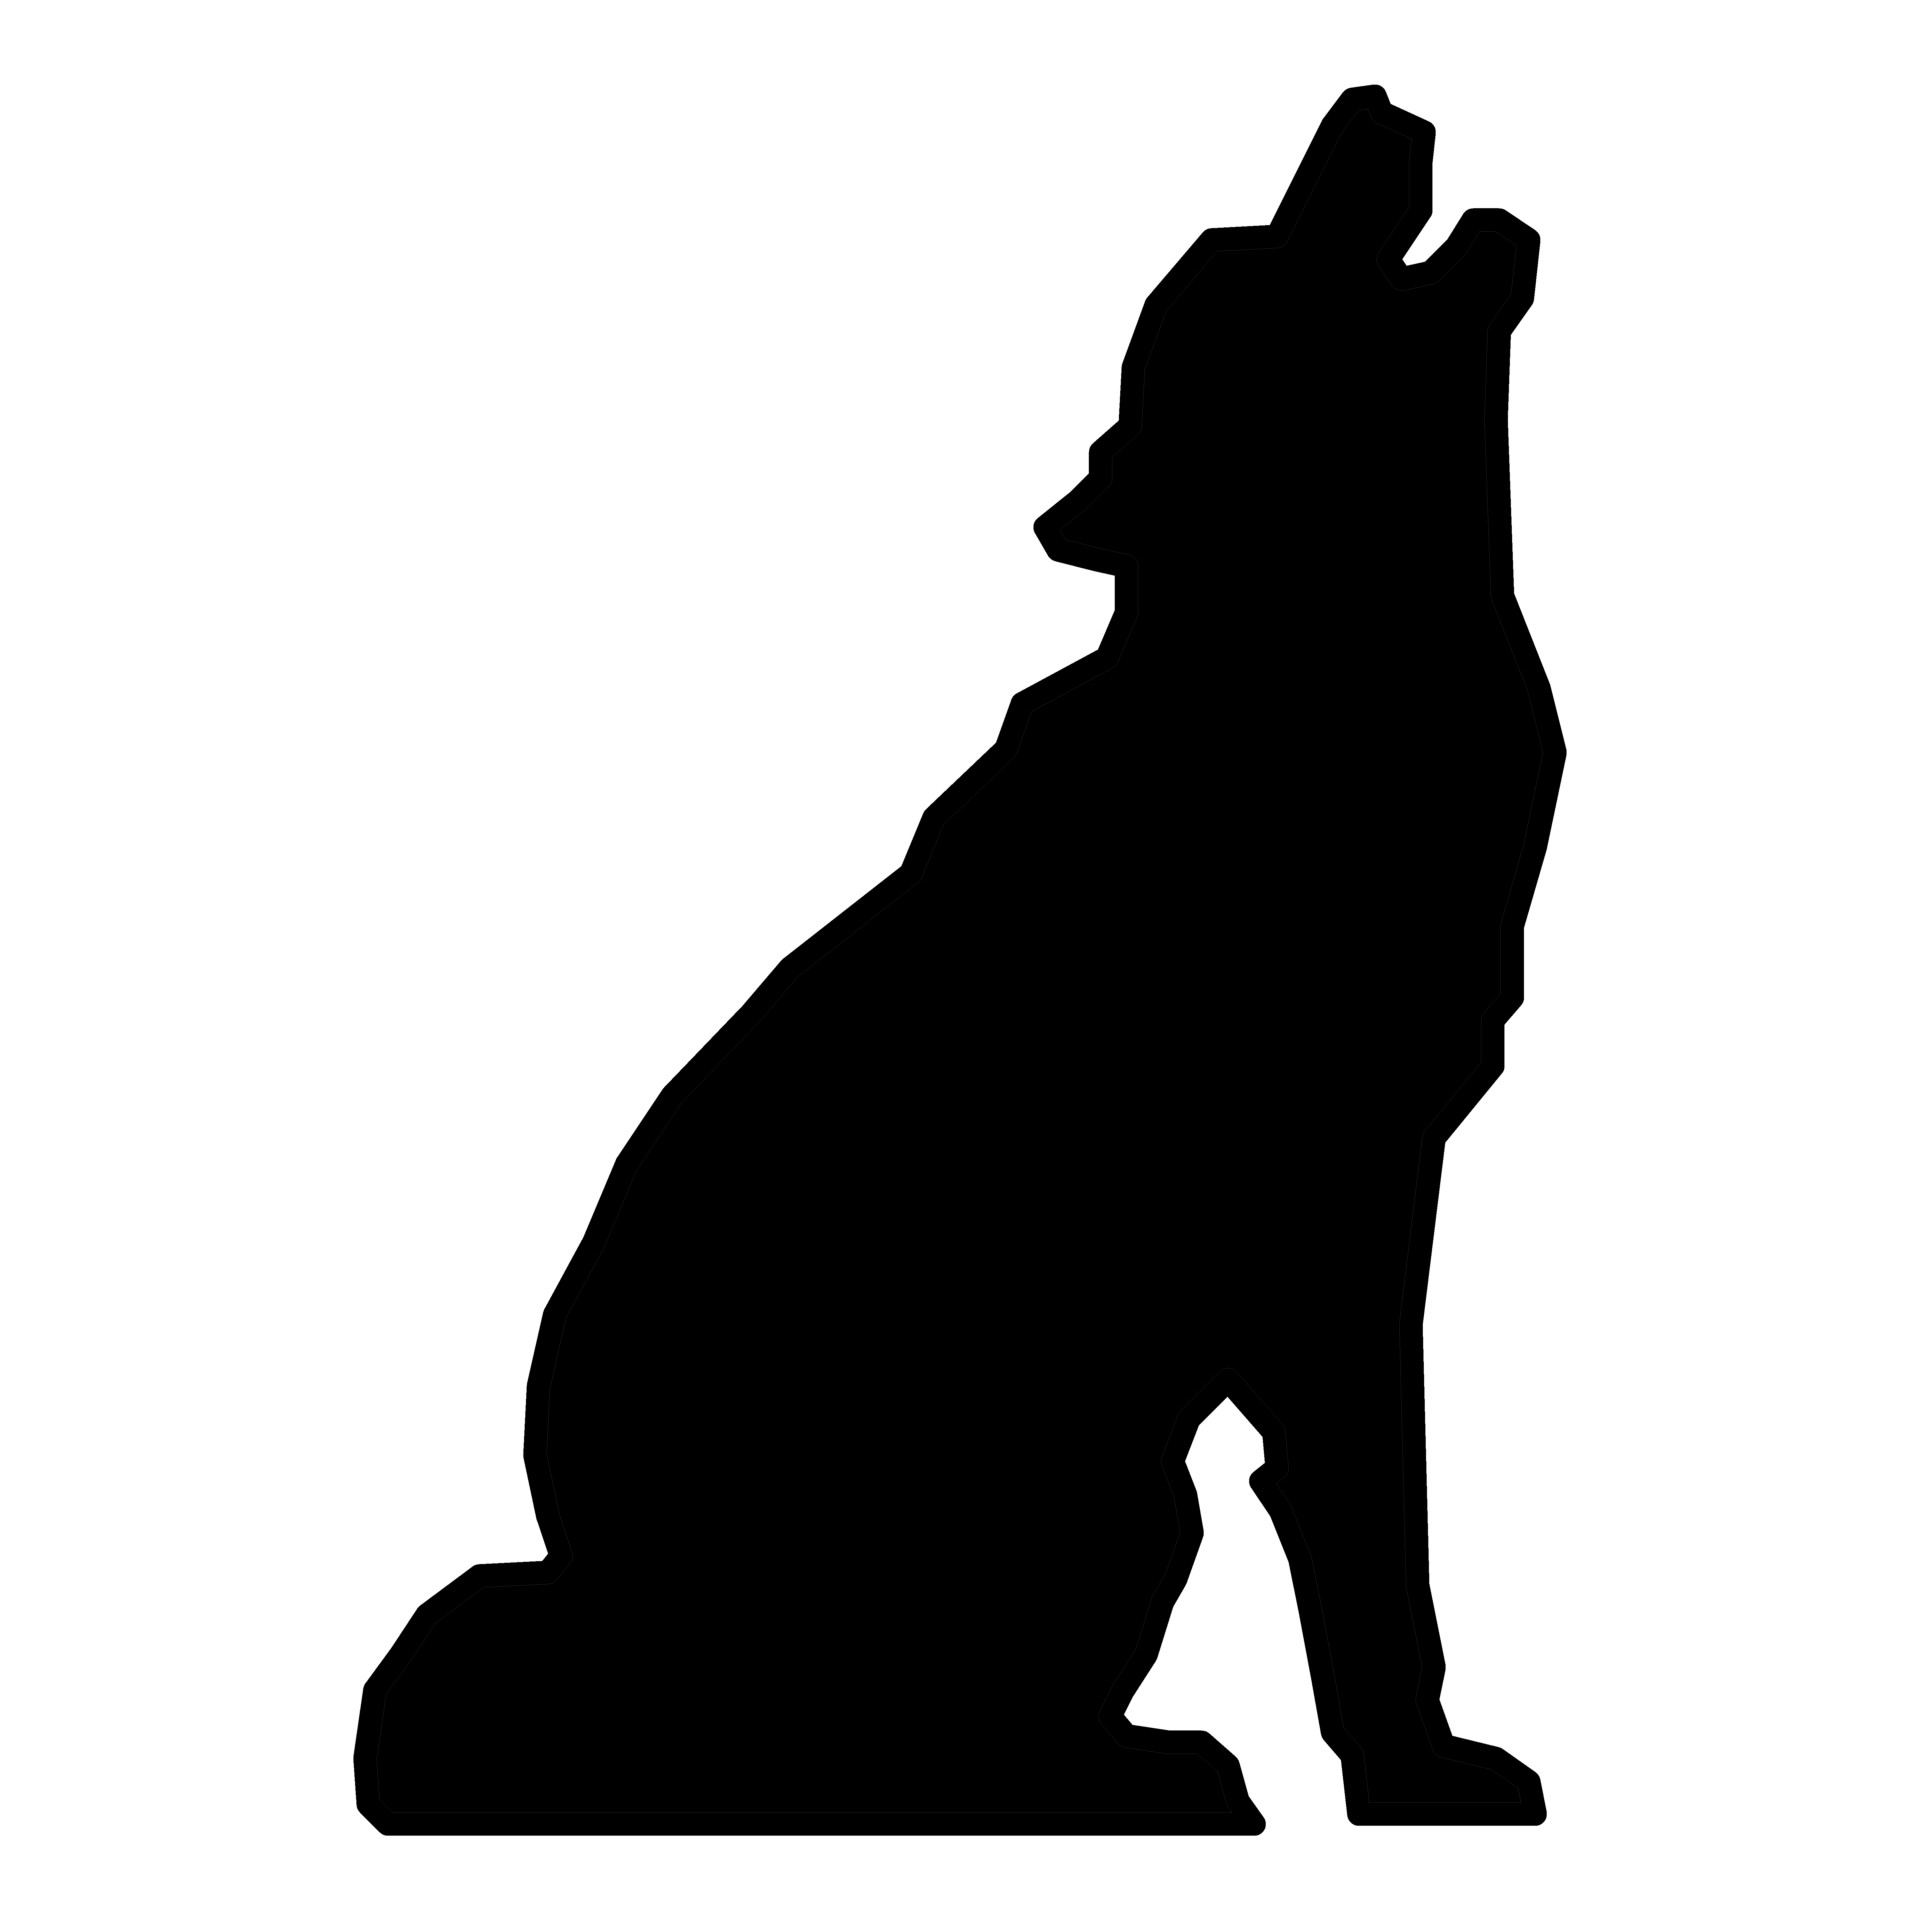 Howling clipart silhouette. Wolf at getdrawings com